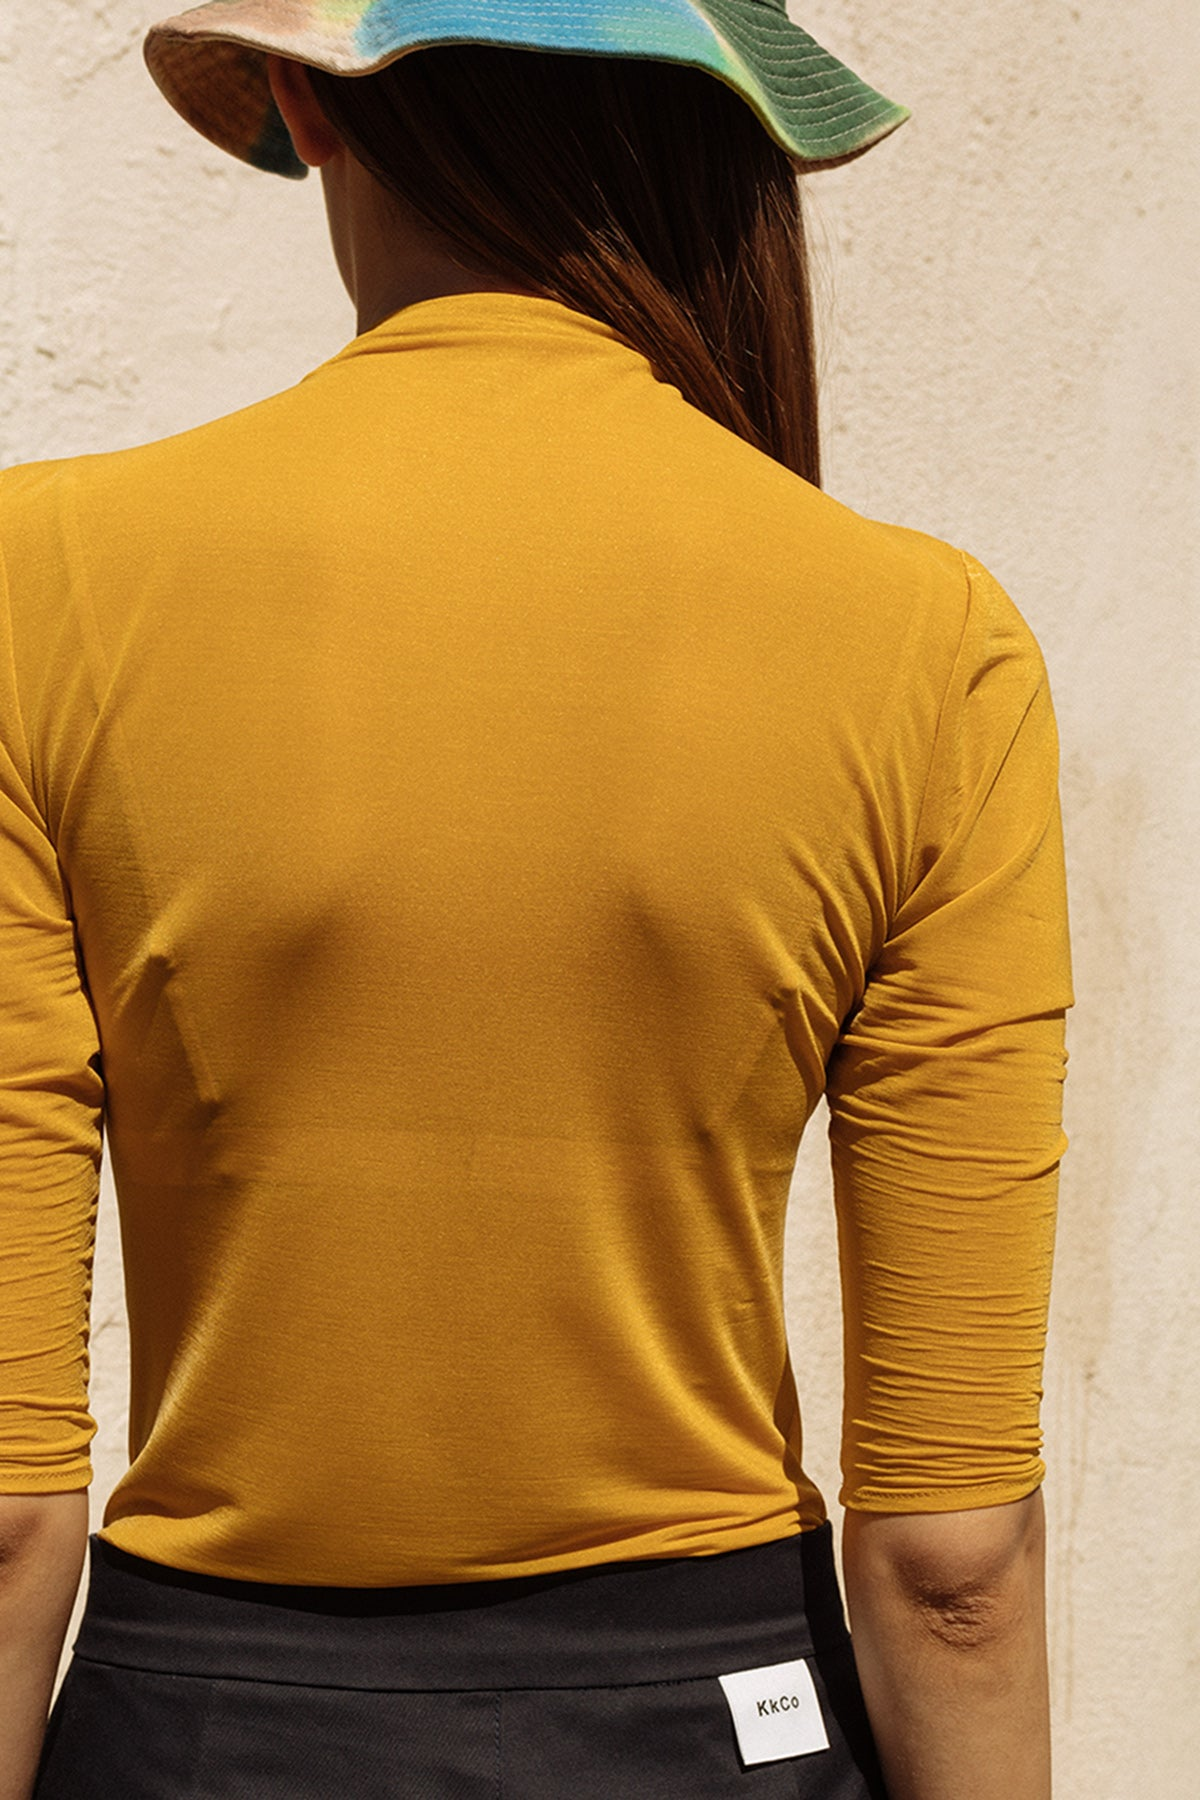 Transparent Knit in Mustard